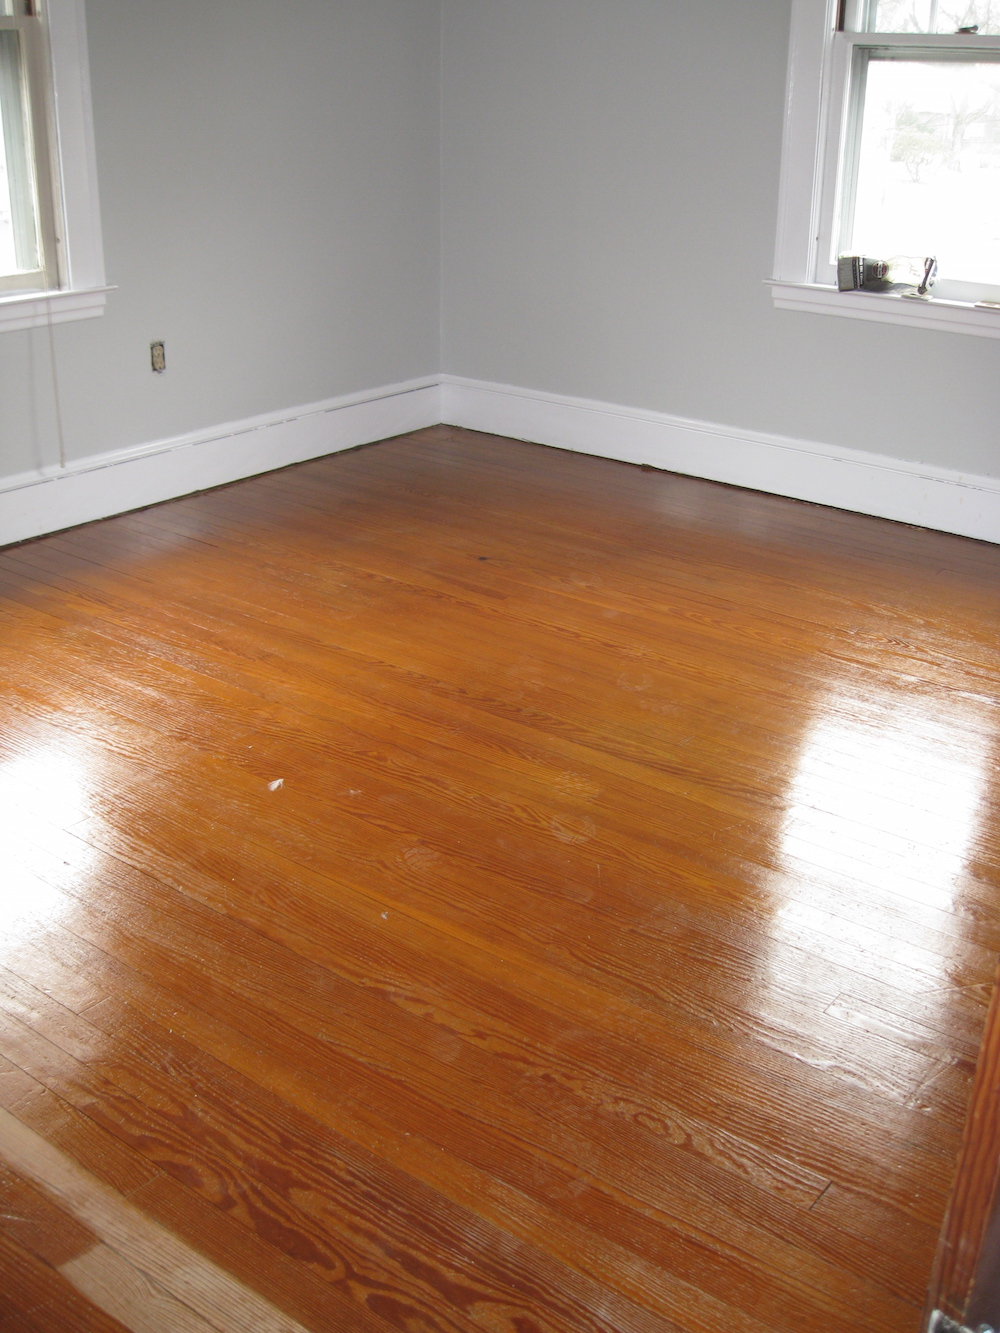 Repairing restoring old wood floor experience hardwood for How to get paint out of wood floors